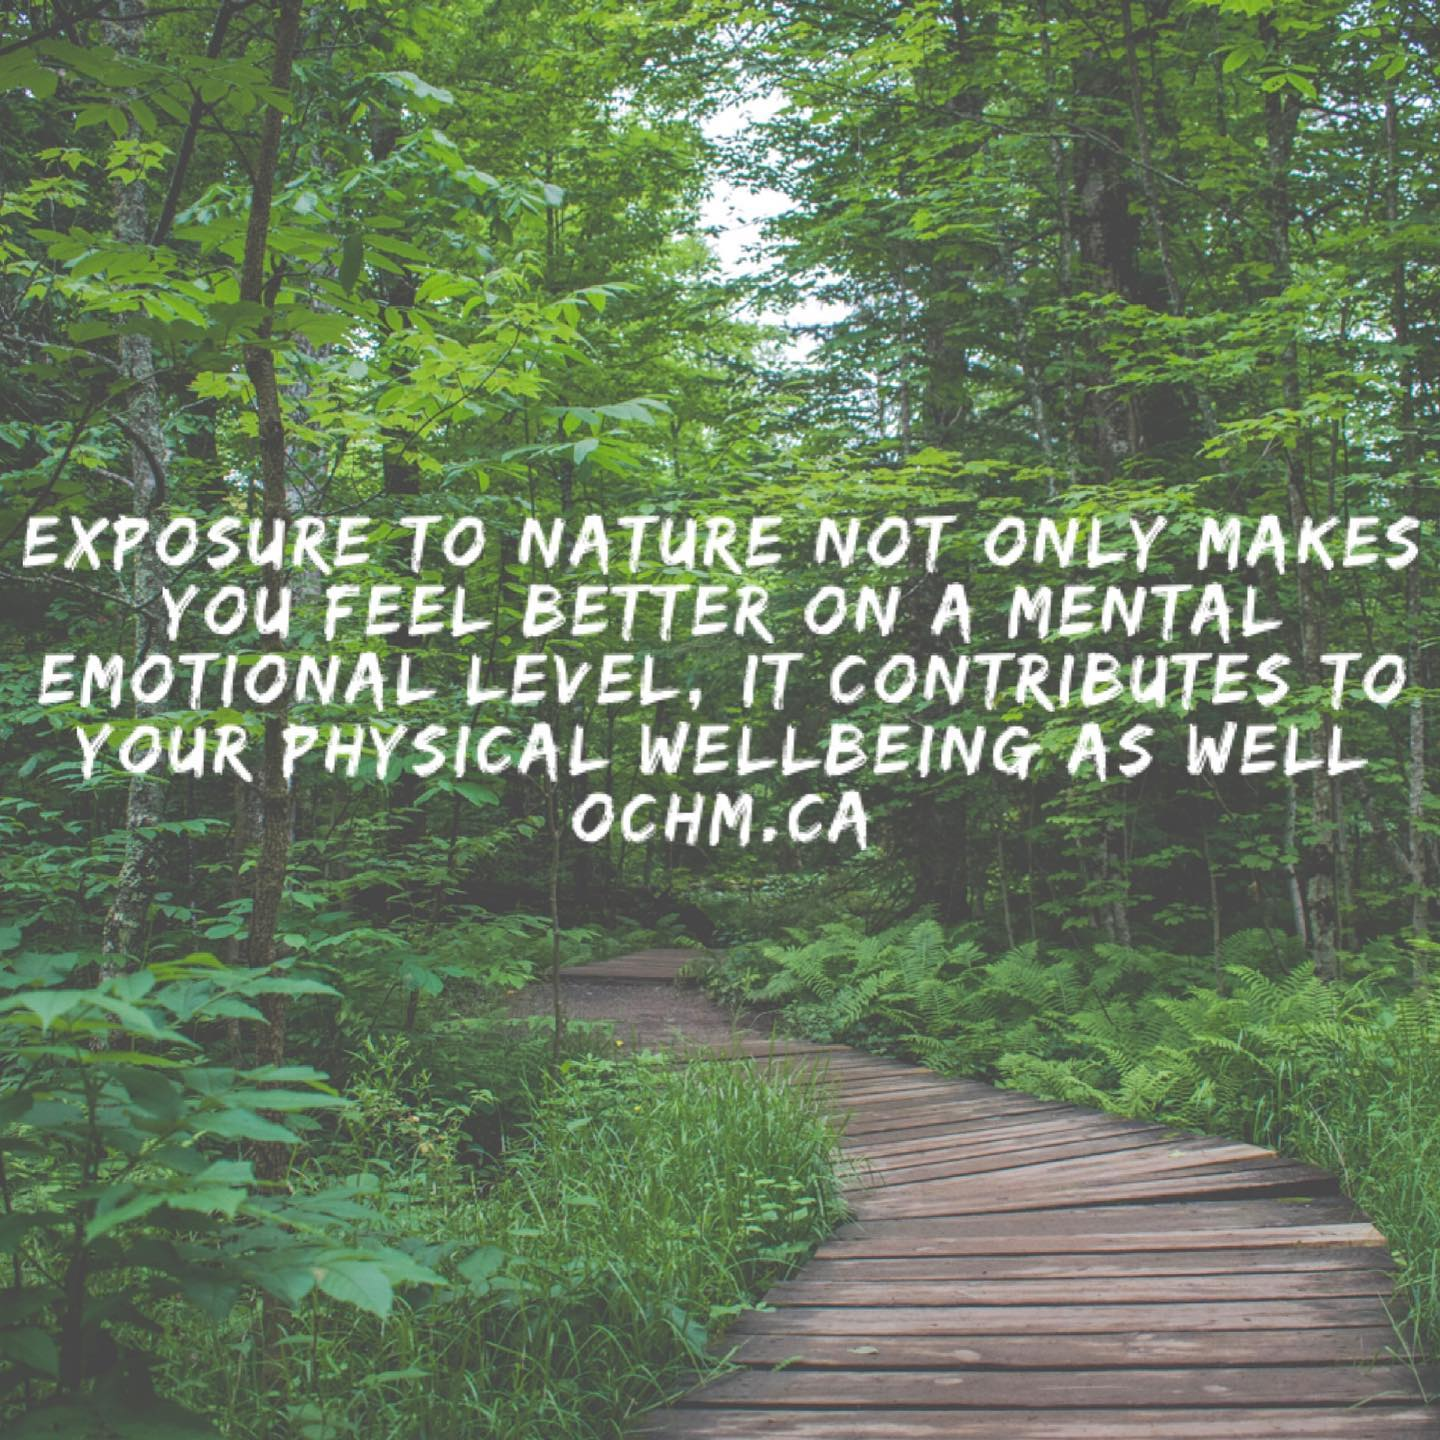 Exposure to Nature Increases Feel-Good Emotions